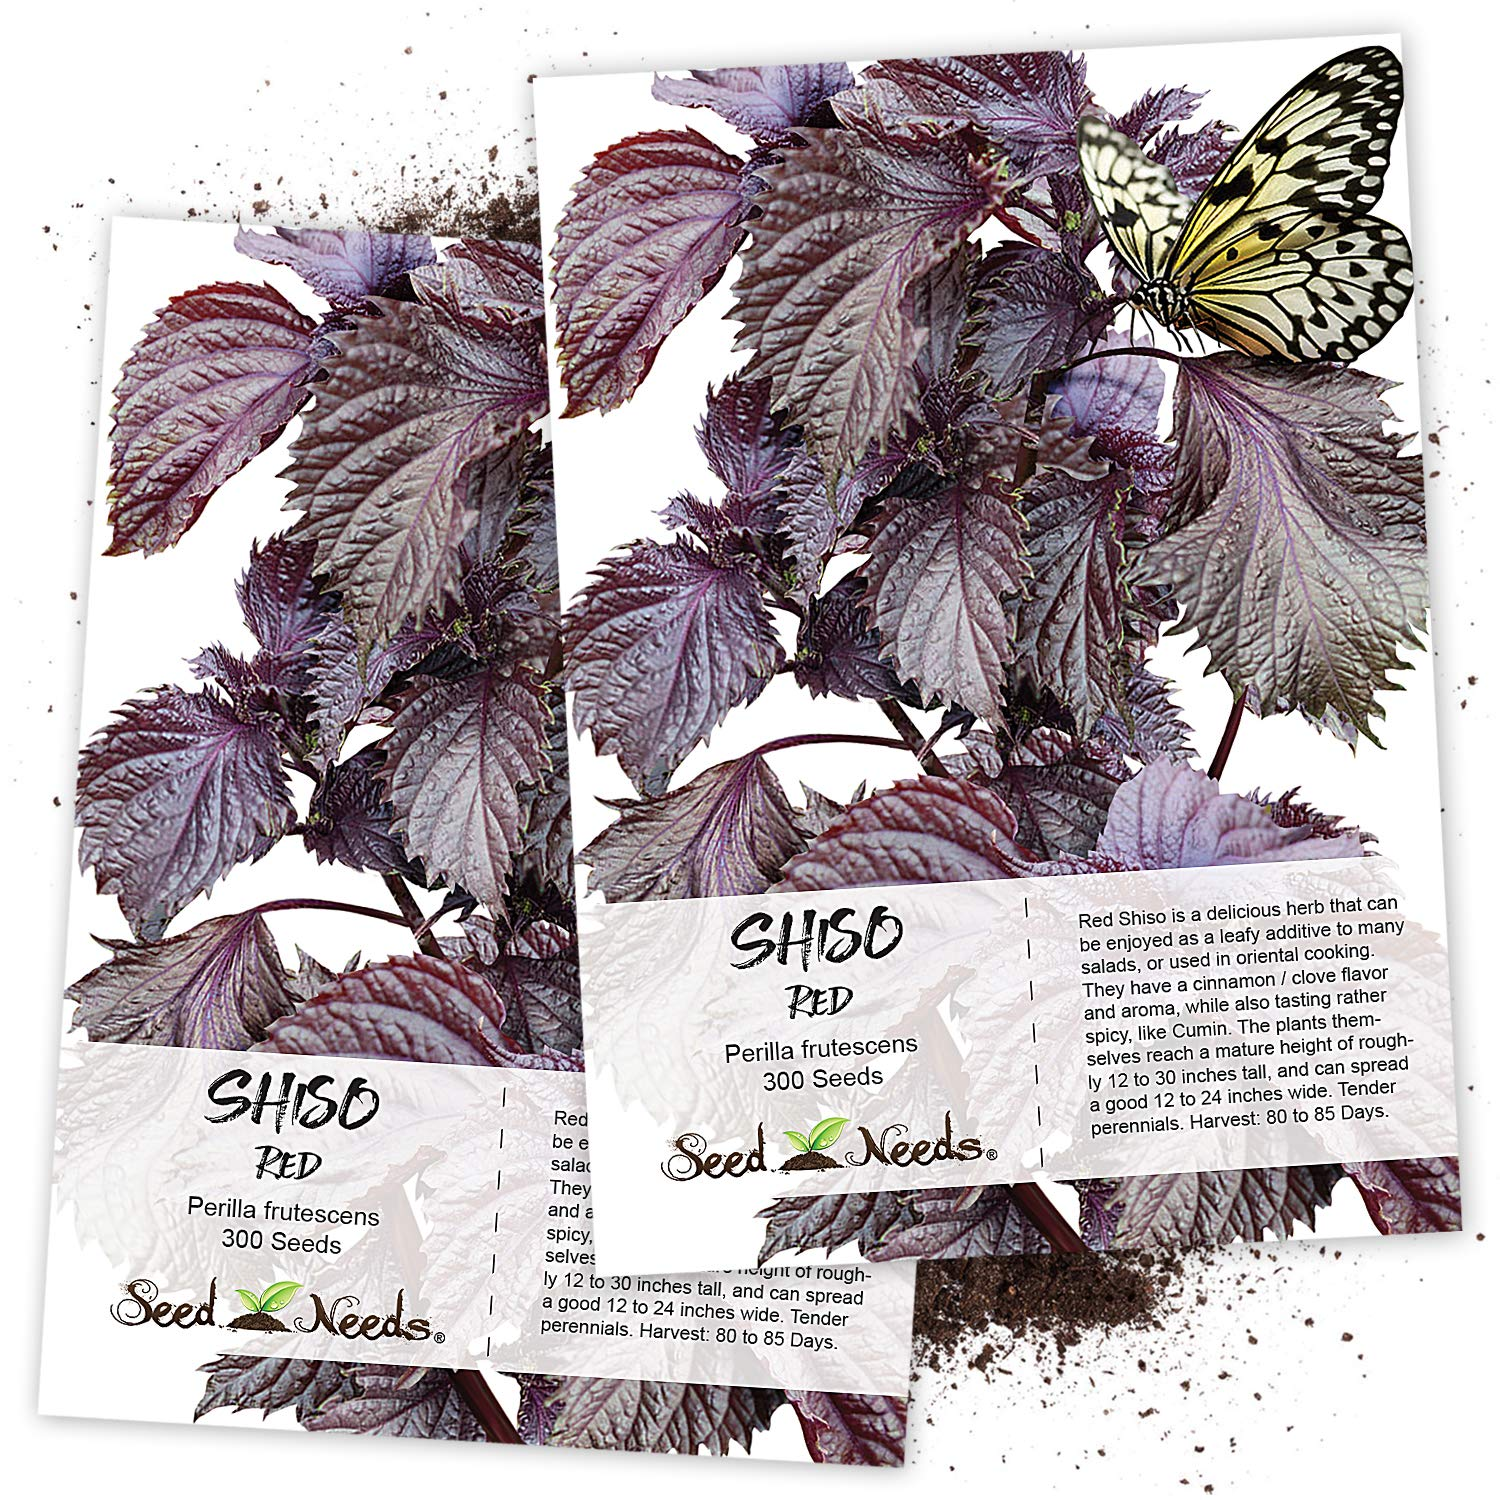 Seed Needs, Red Shiso Herb (Perilla frutescens) Twin Pack of 300 Seeds Each Non-GMO